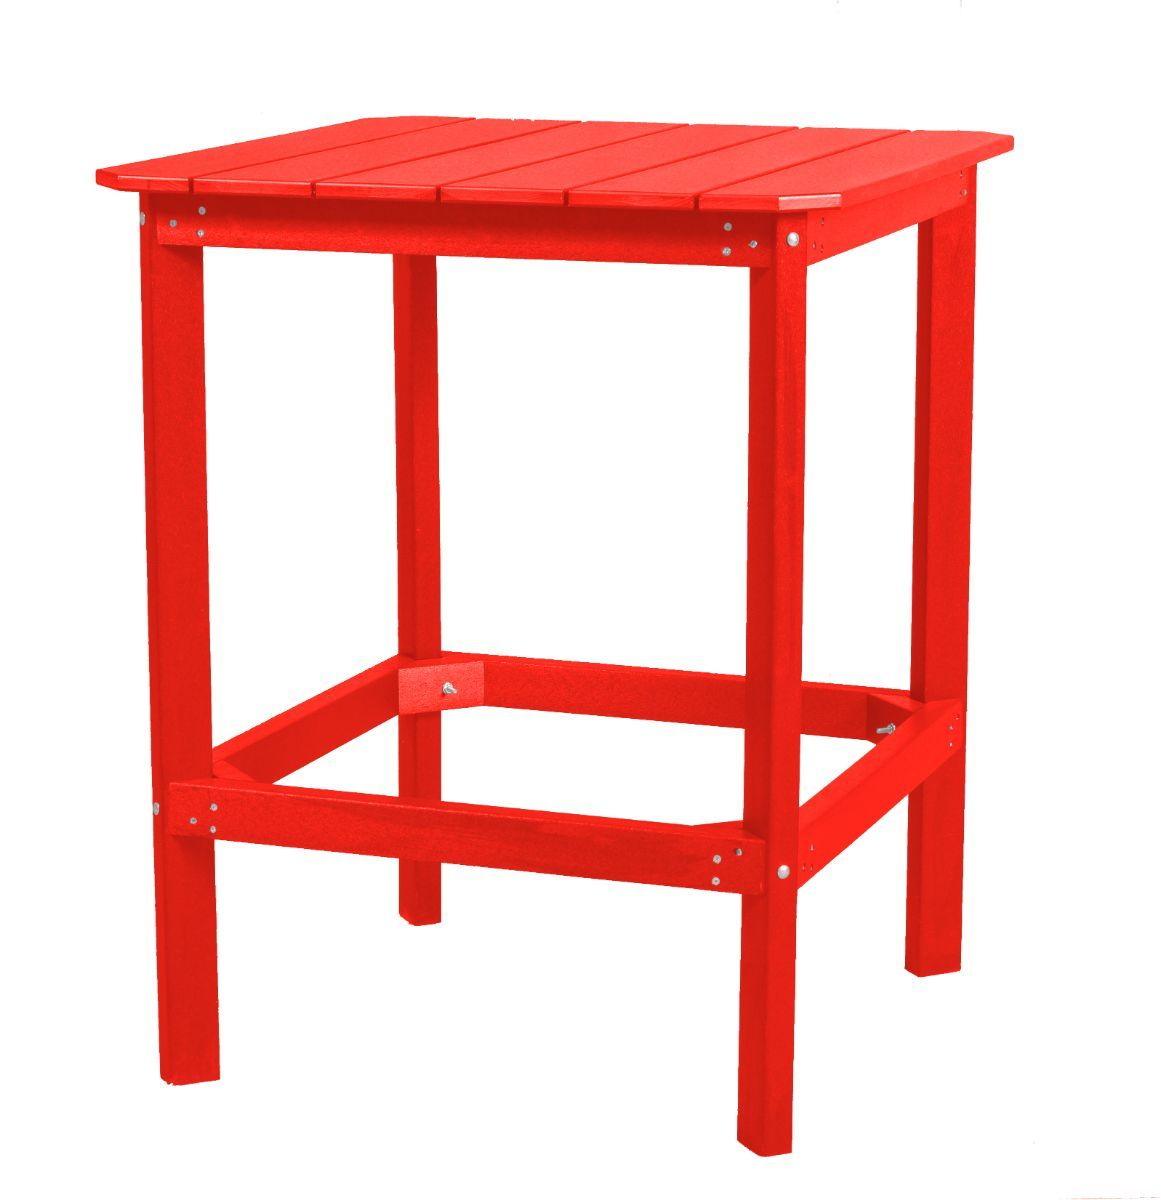 Bright Red Panama High Outdoor Dining Table